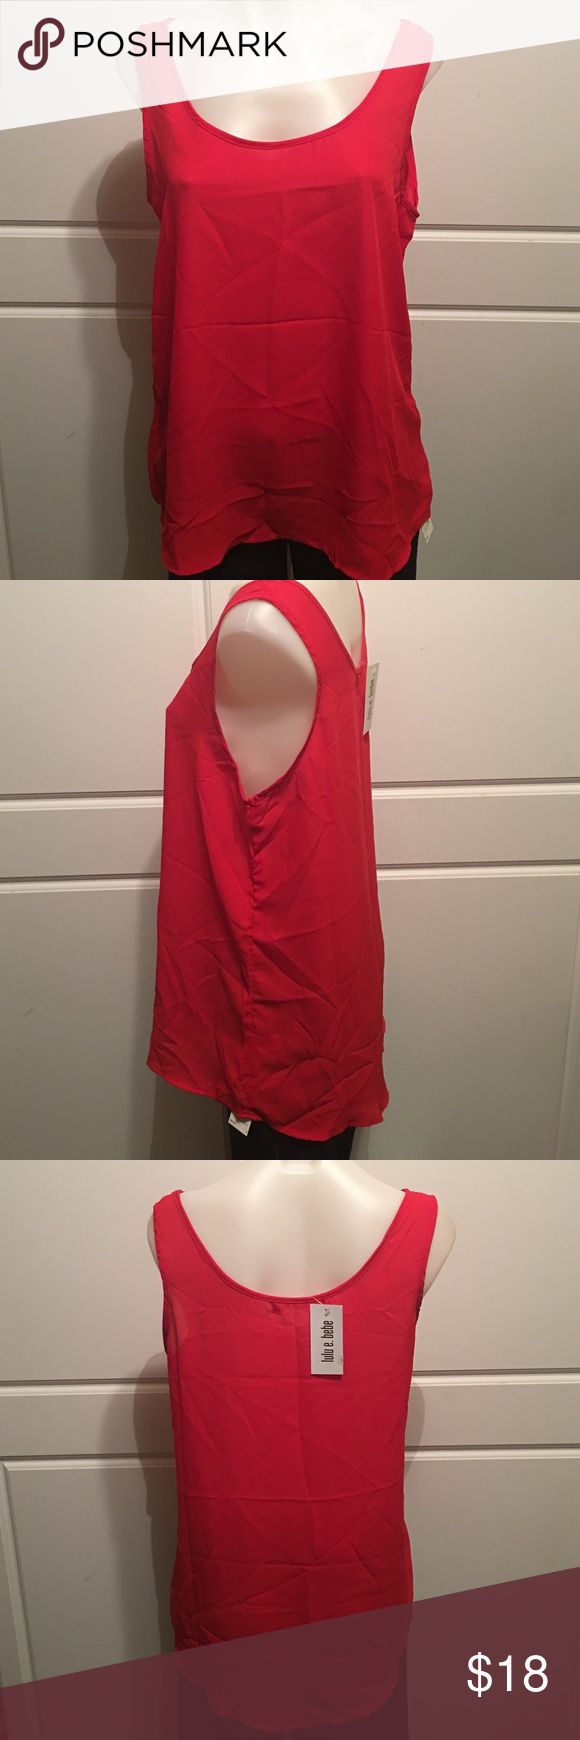 Best 10+ Red tank tops ideas on Pinterest | Chiffon cami tops ...